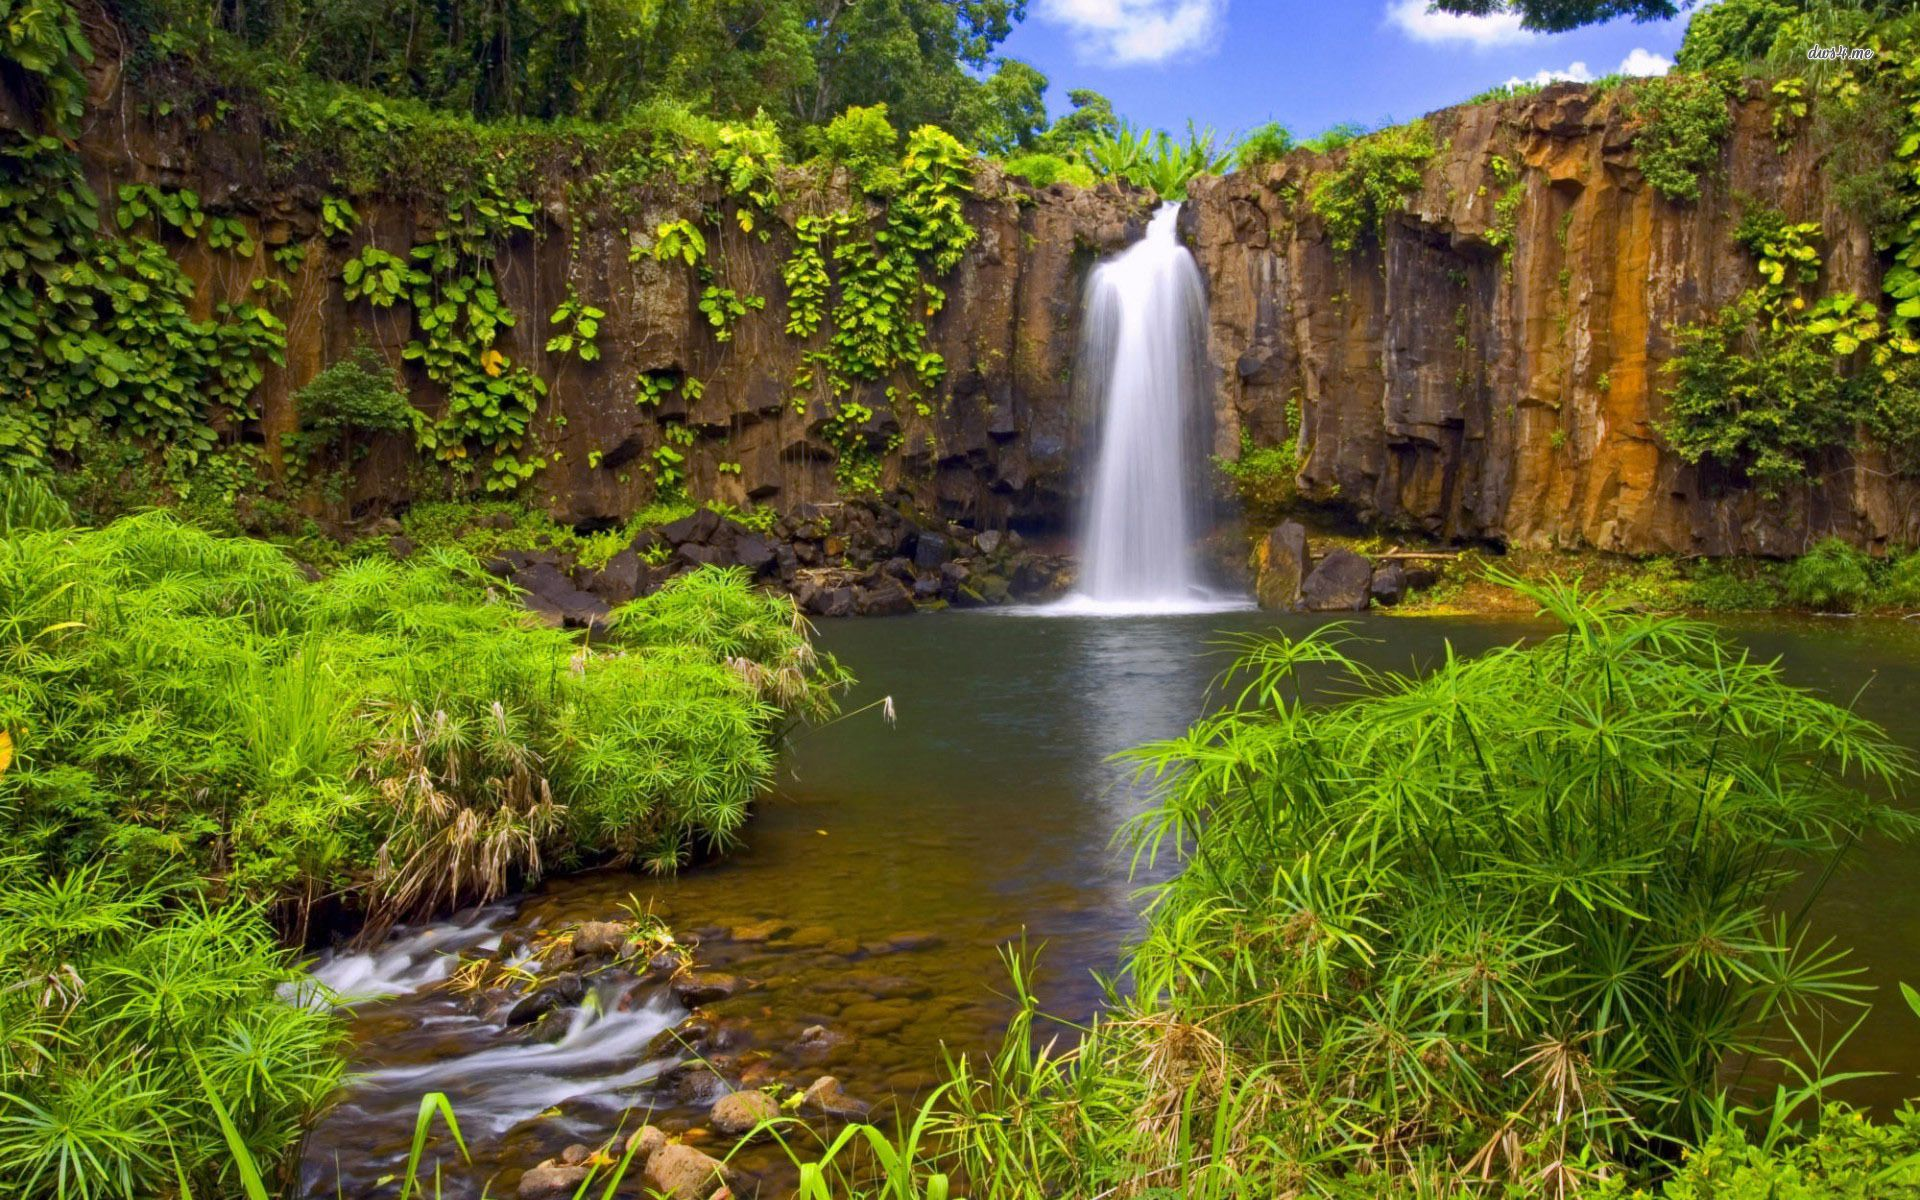 Jungle waterfall jungle waterfall wallpaper nature - Nature wallpaper of waterfall ...